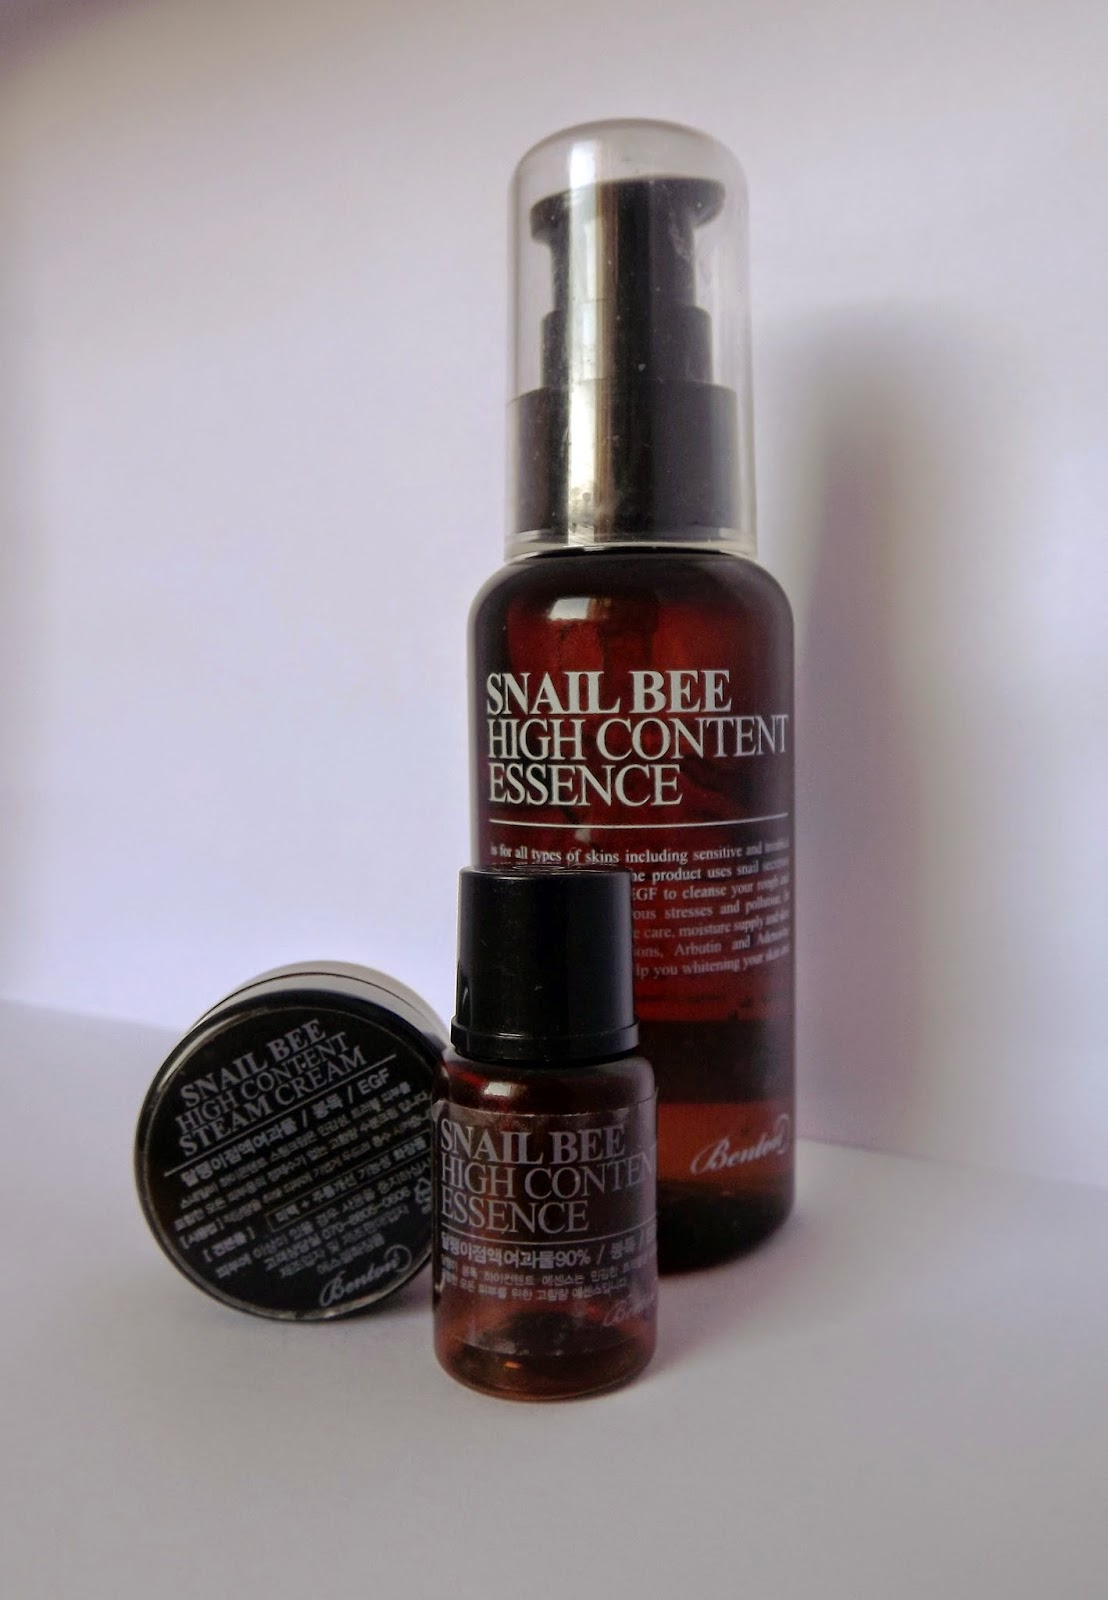 Full size Benton Snail Essence and Snail Essence and Steam Cream samples